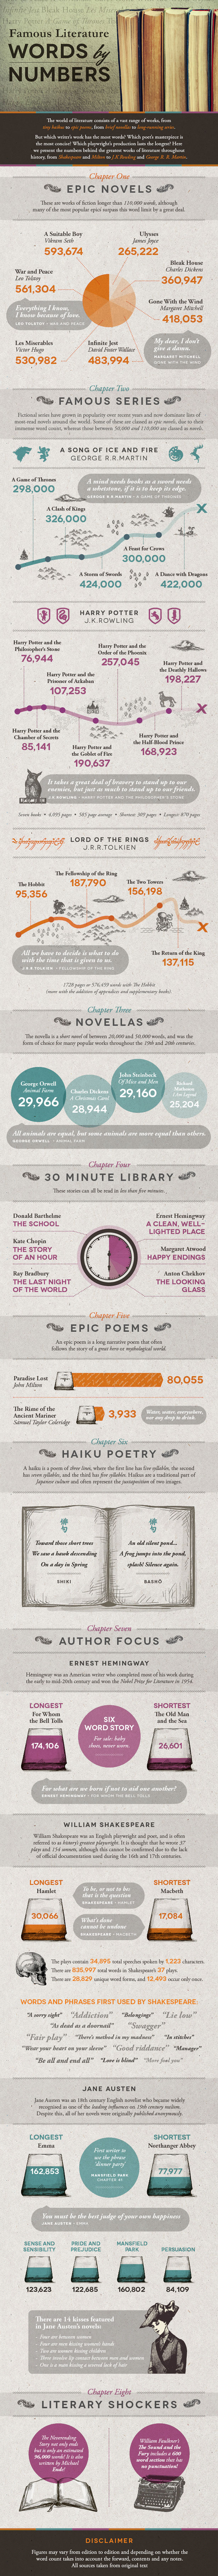 word count famous books